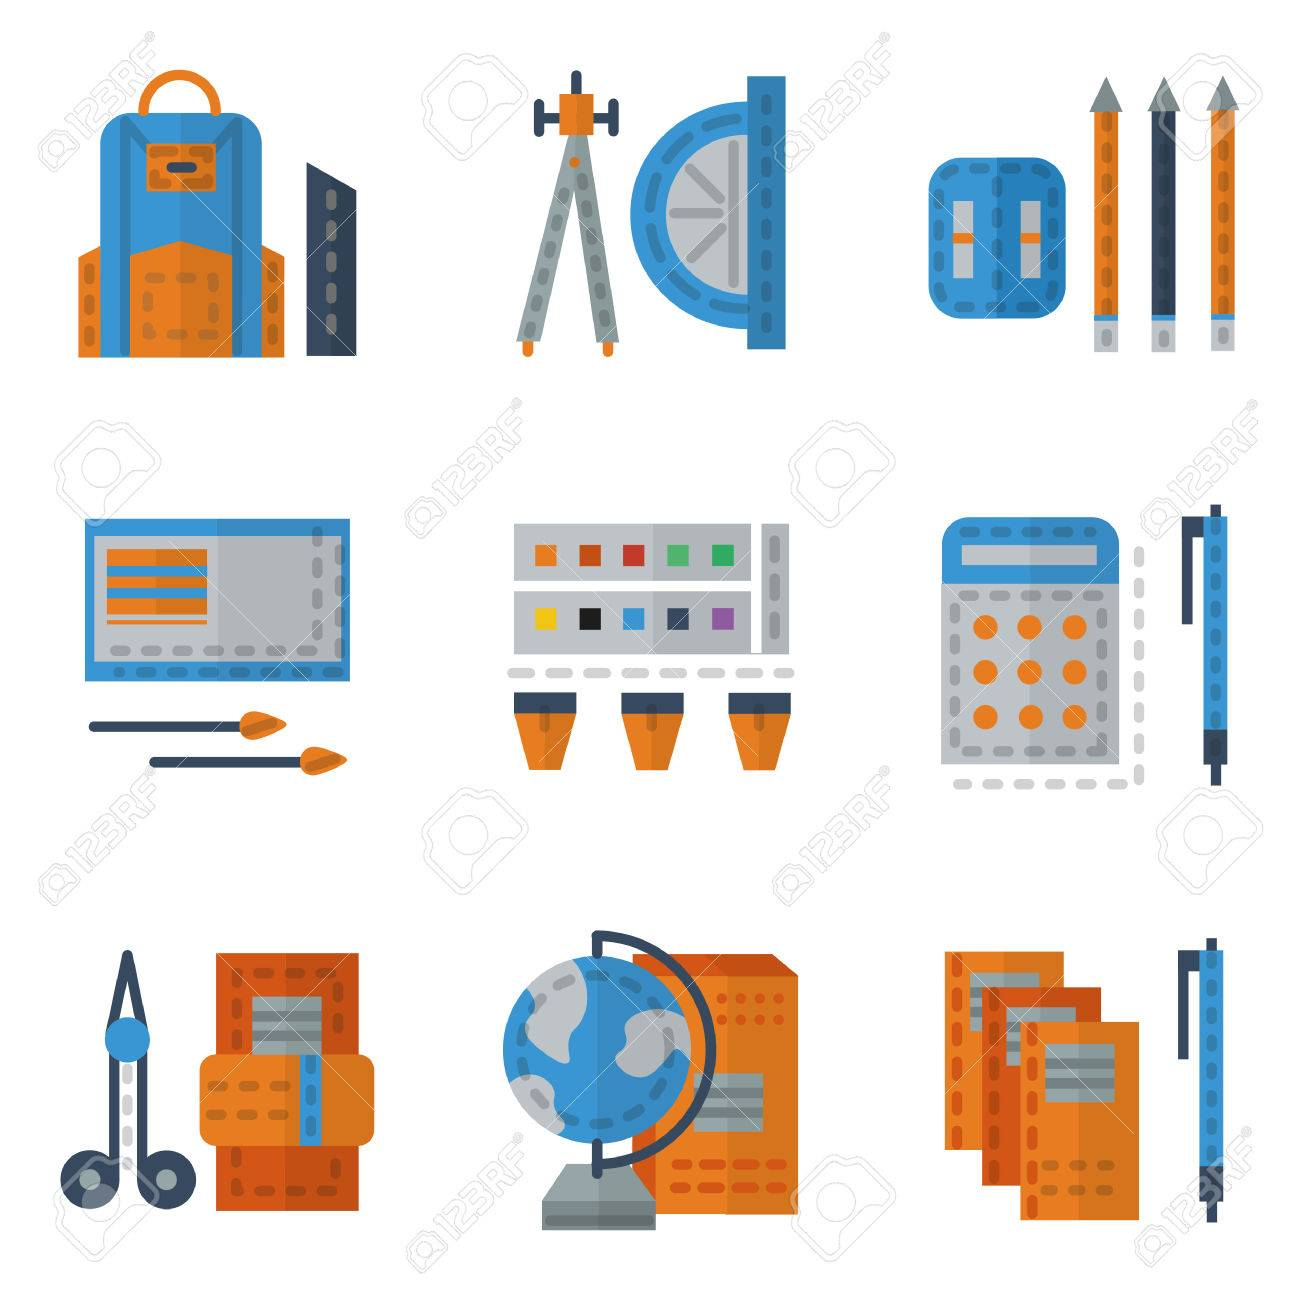 Set of flat color icons for school utensils school bag ruler set of flat color icons for school utensils school bag ruler and protractor voltagebd Images